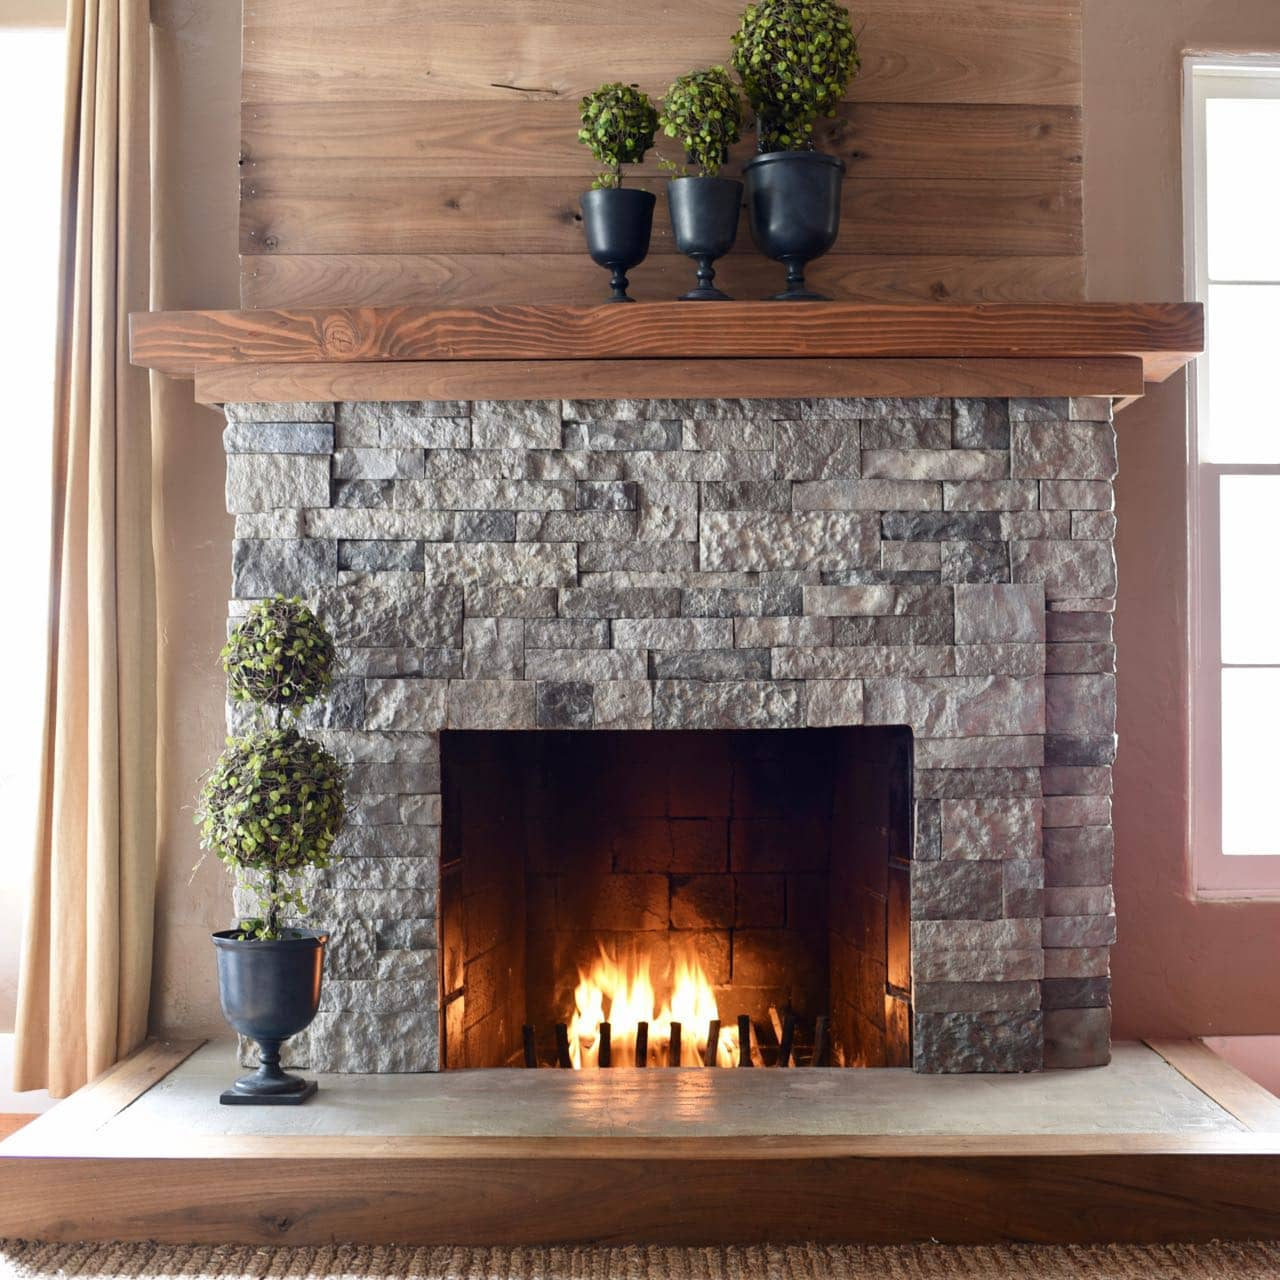 Gorgeous This Easy Diy Tutorial Airstone Fireplace Makeover Make Life My Home Is Grey Stone Osrs Runescape 07 My Home Is Grey Made Made Stone Someairstone Airstone Fireplace Transform Your Fireplace curbed My Home Is Grey And Made Of Stone